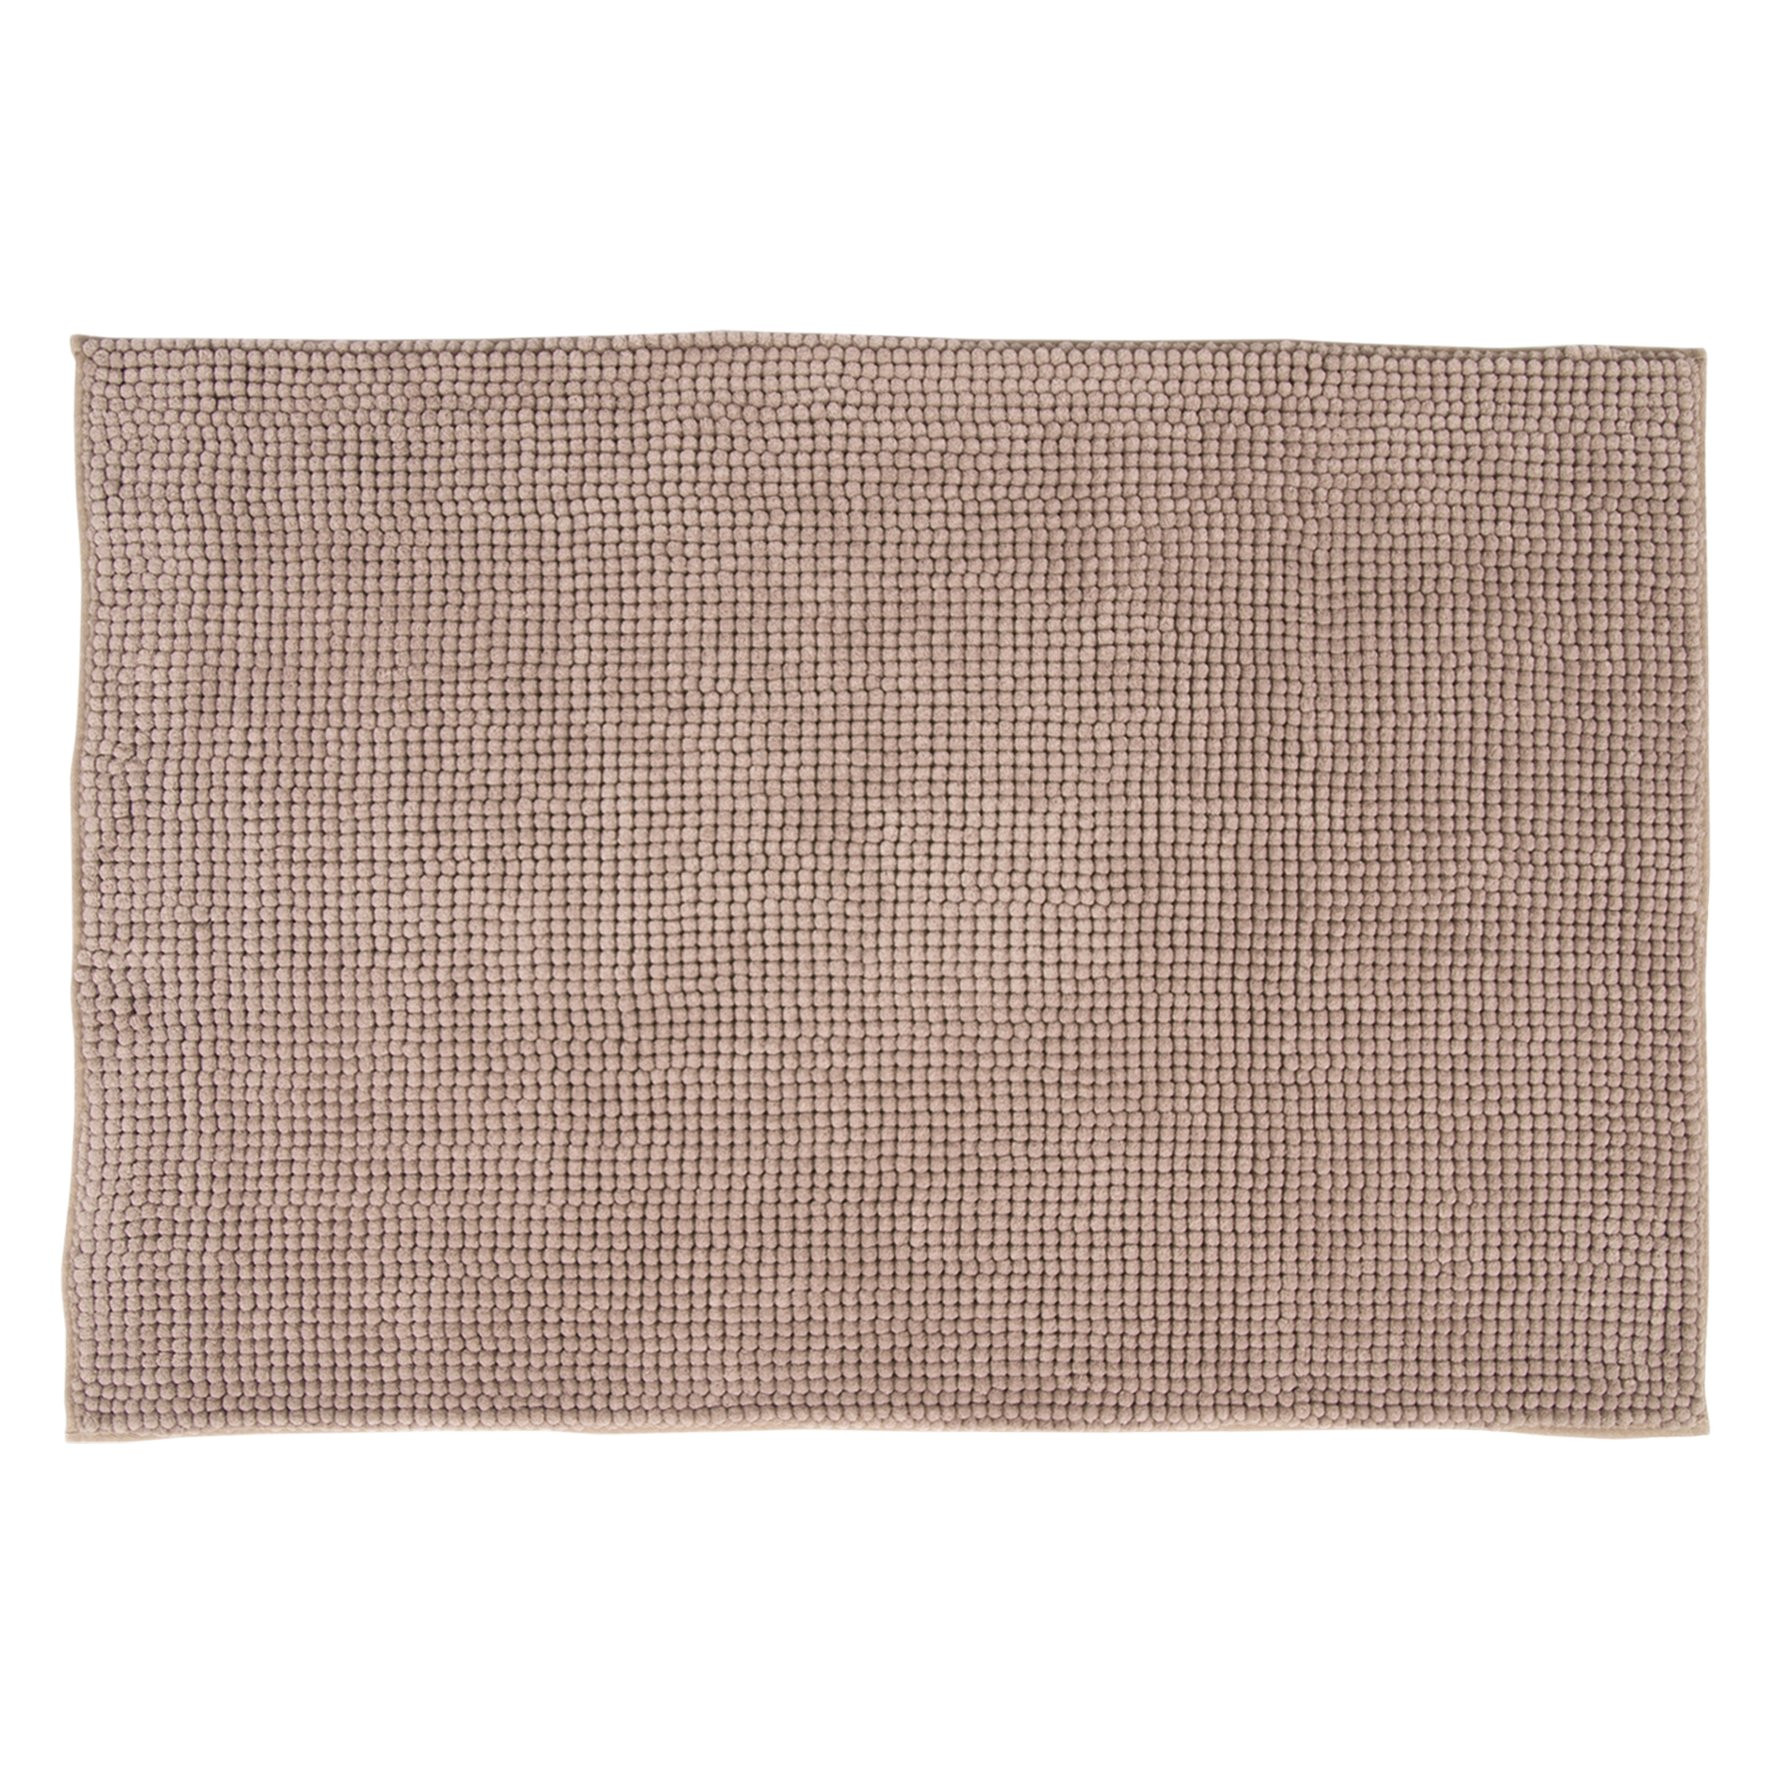 DIFFERNZ 31.220.08 Candore Bath Mat, Taupe by Differnz